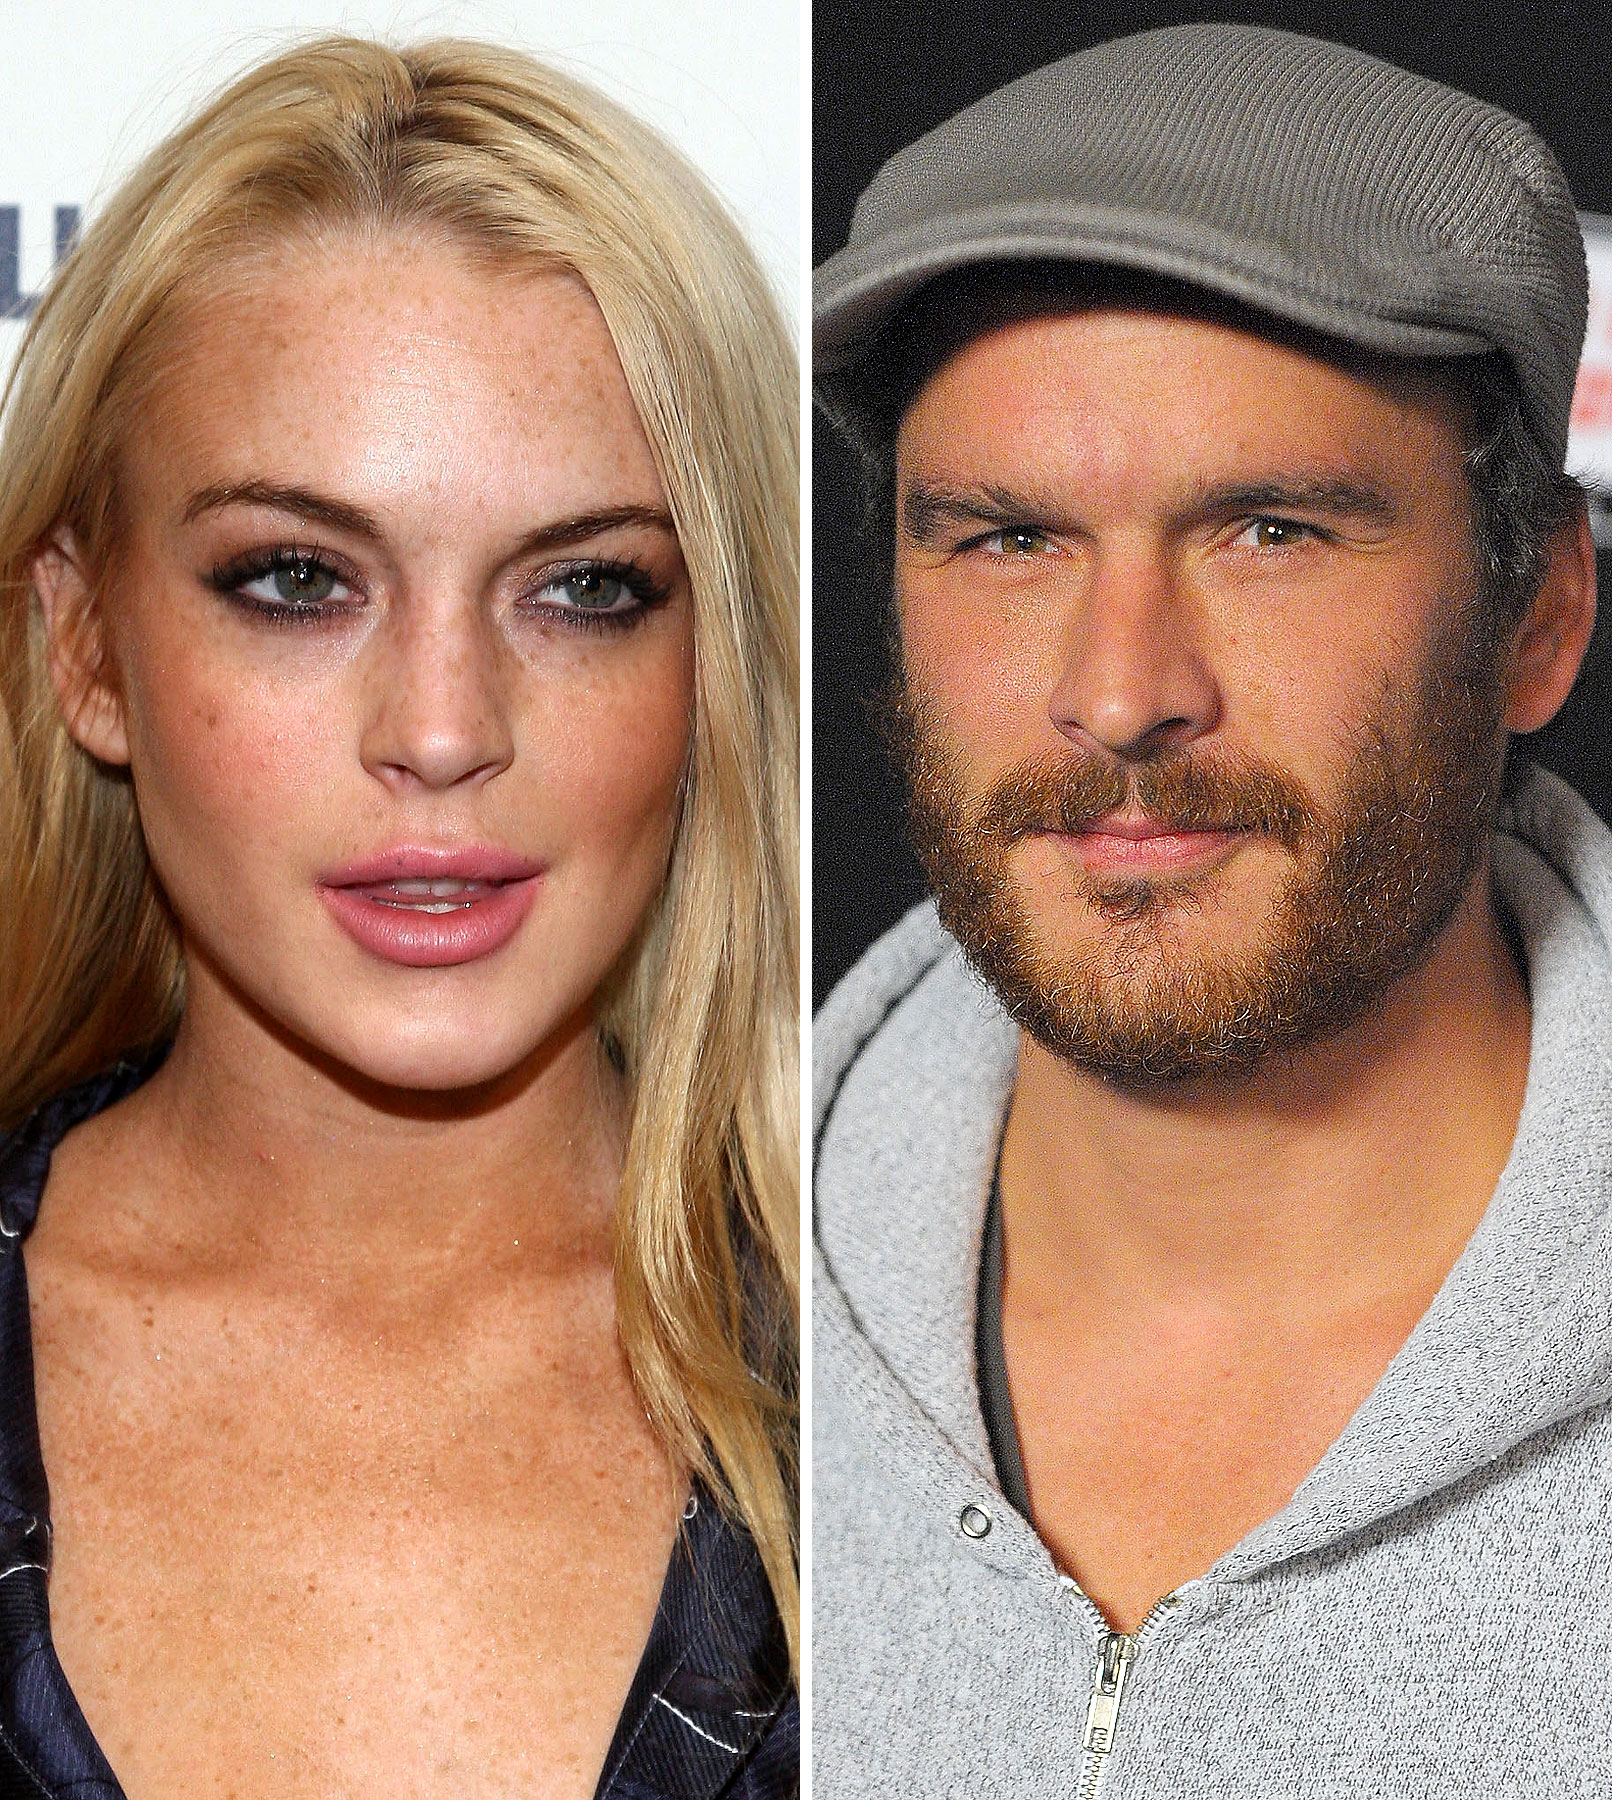 Hookup Alert: Lindsay Lohan and…Balthazar Getty?!!?